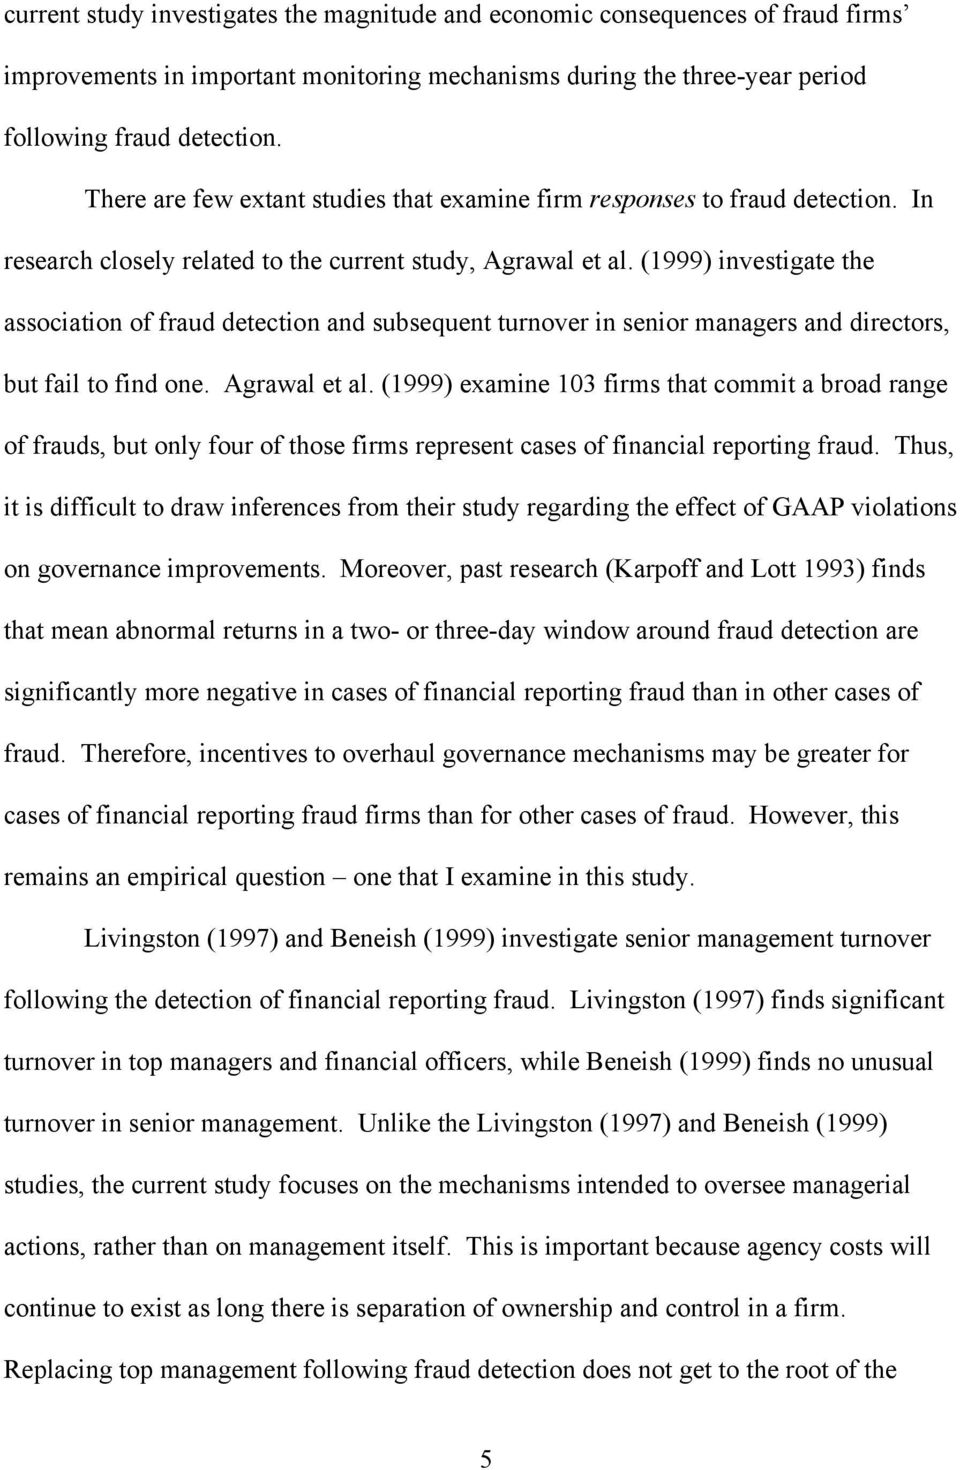 (1999) investigate the association of fraud detection and subsequent turnover in senior managers and directors, but fail to find one. Agrawal et al.